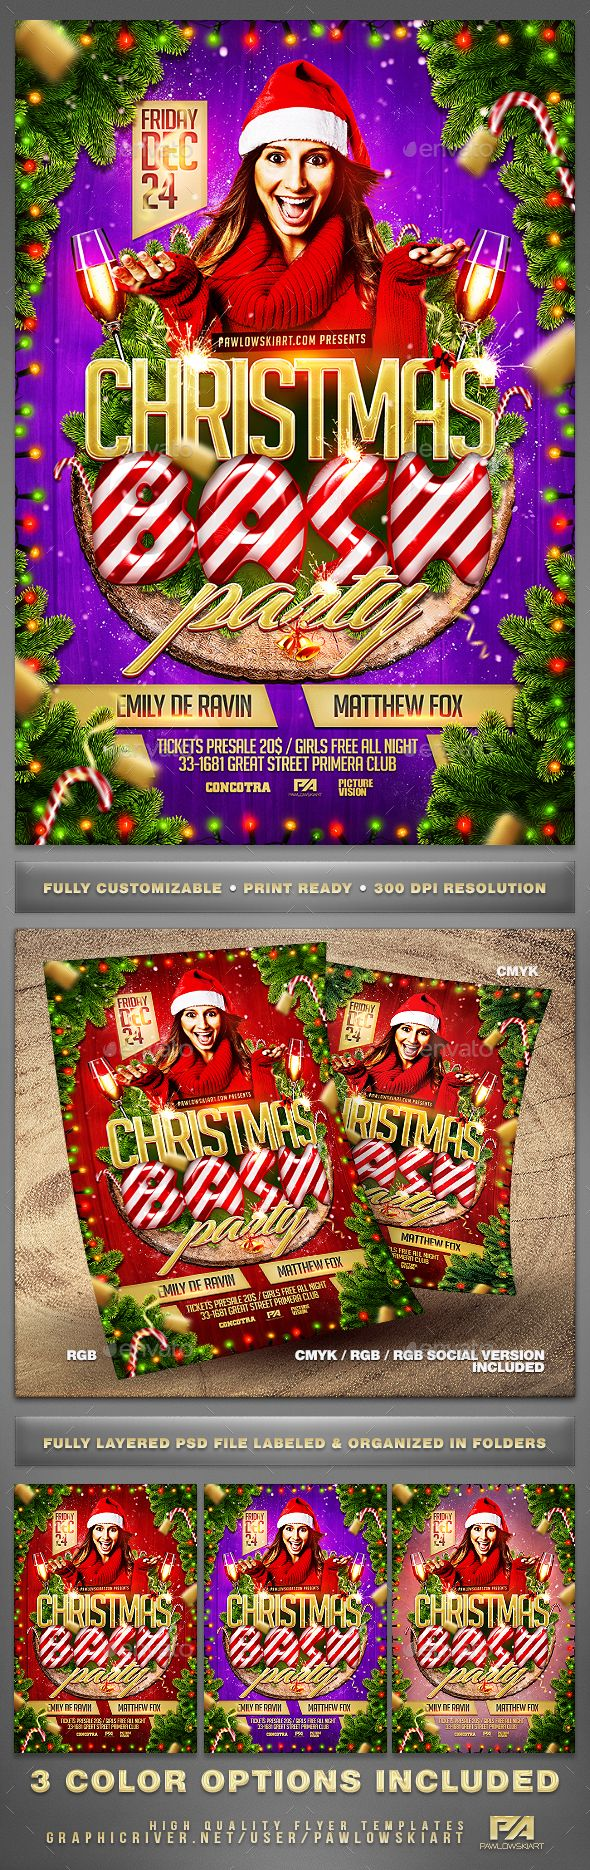 Christmas Bash Party Flyer Template - Holidays Events